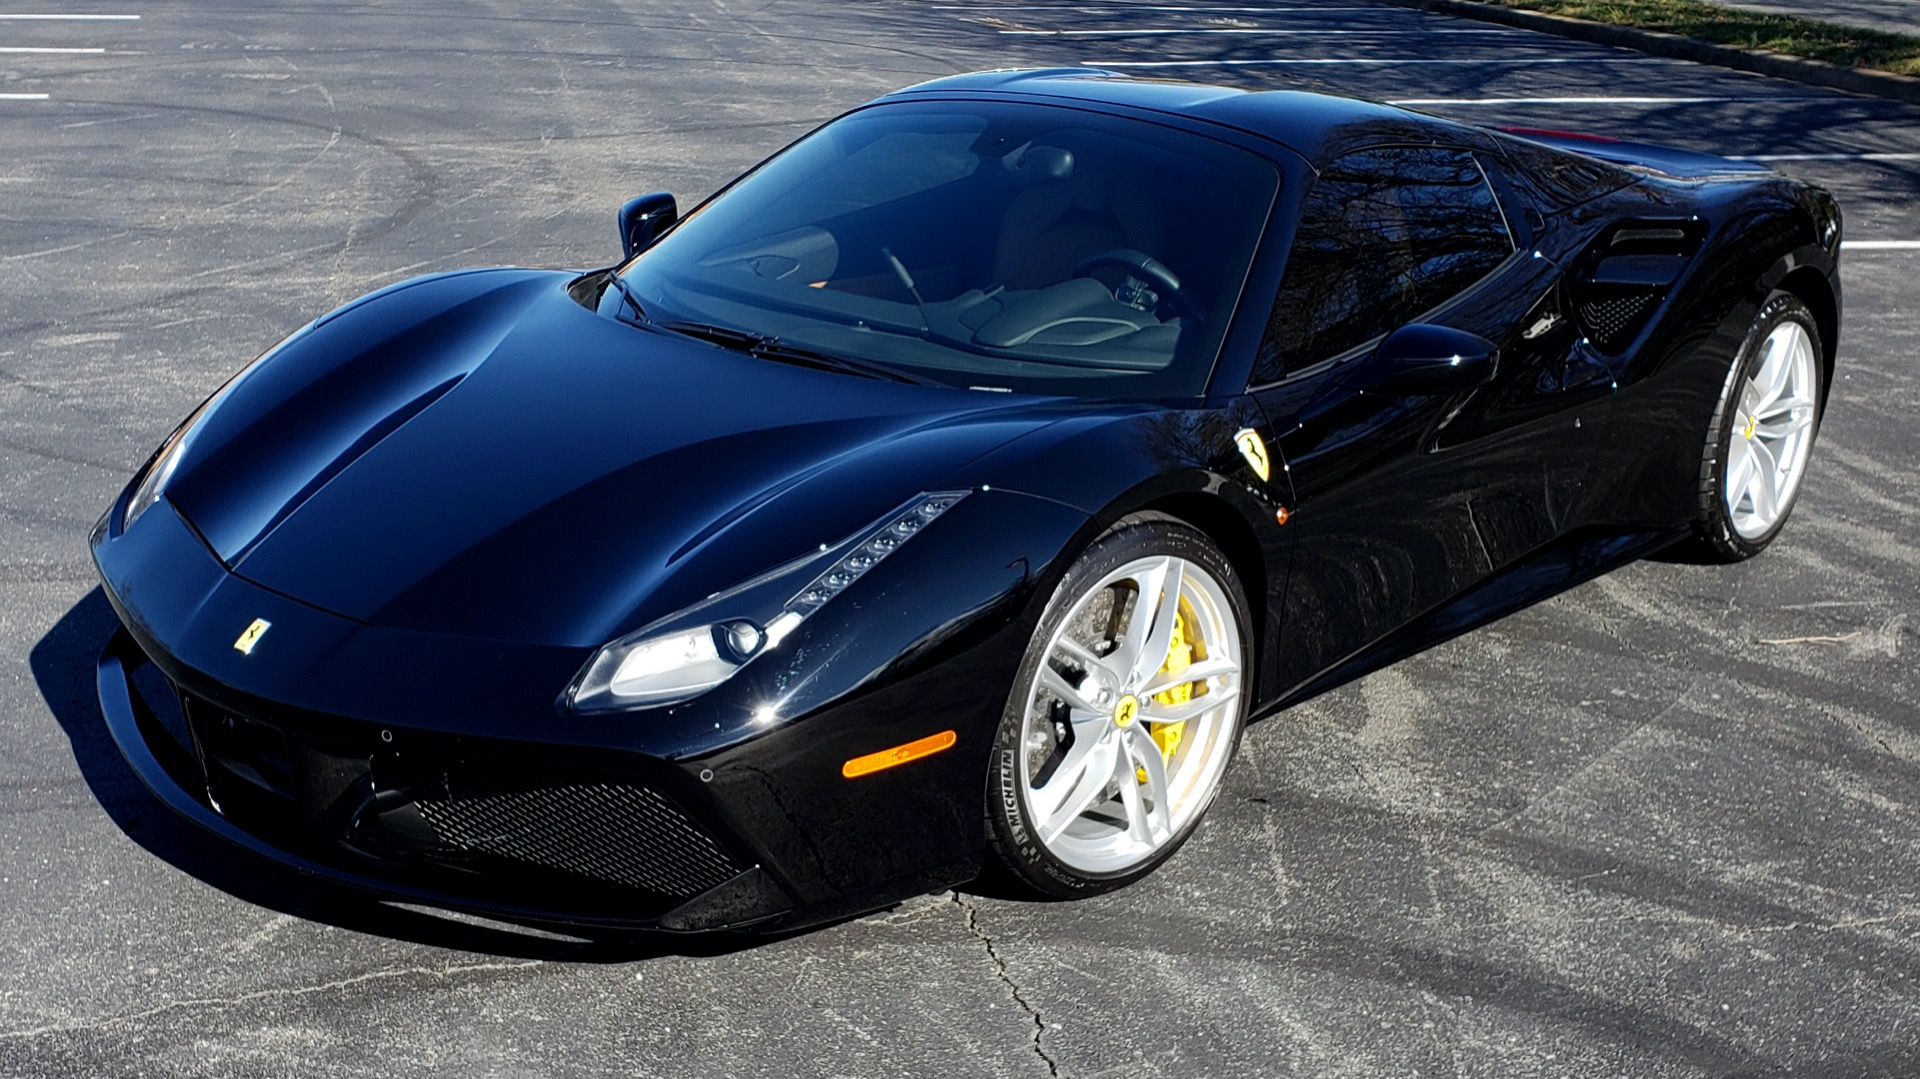 Used 2017 Ferrari 488 Spider SUSP LFT / JBL SND / SPRT EXH / F1 TRANS for sale $315,000 at Formula Imports in Charlotte NC 28227 2